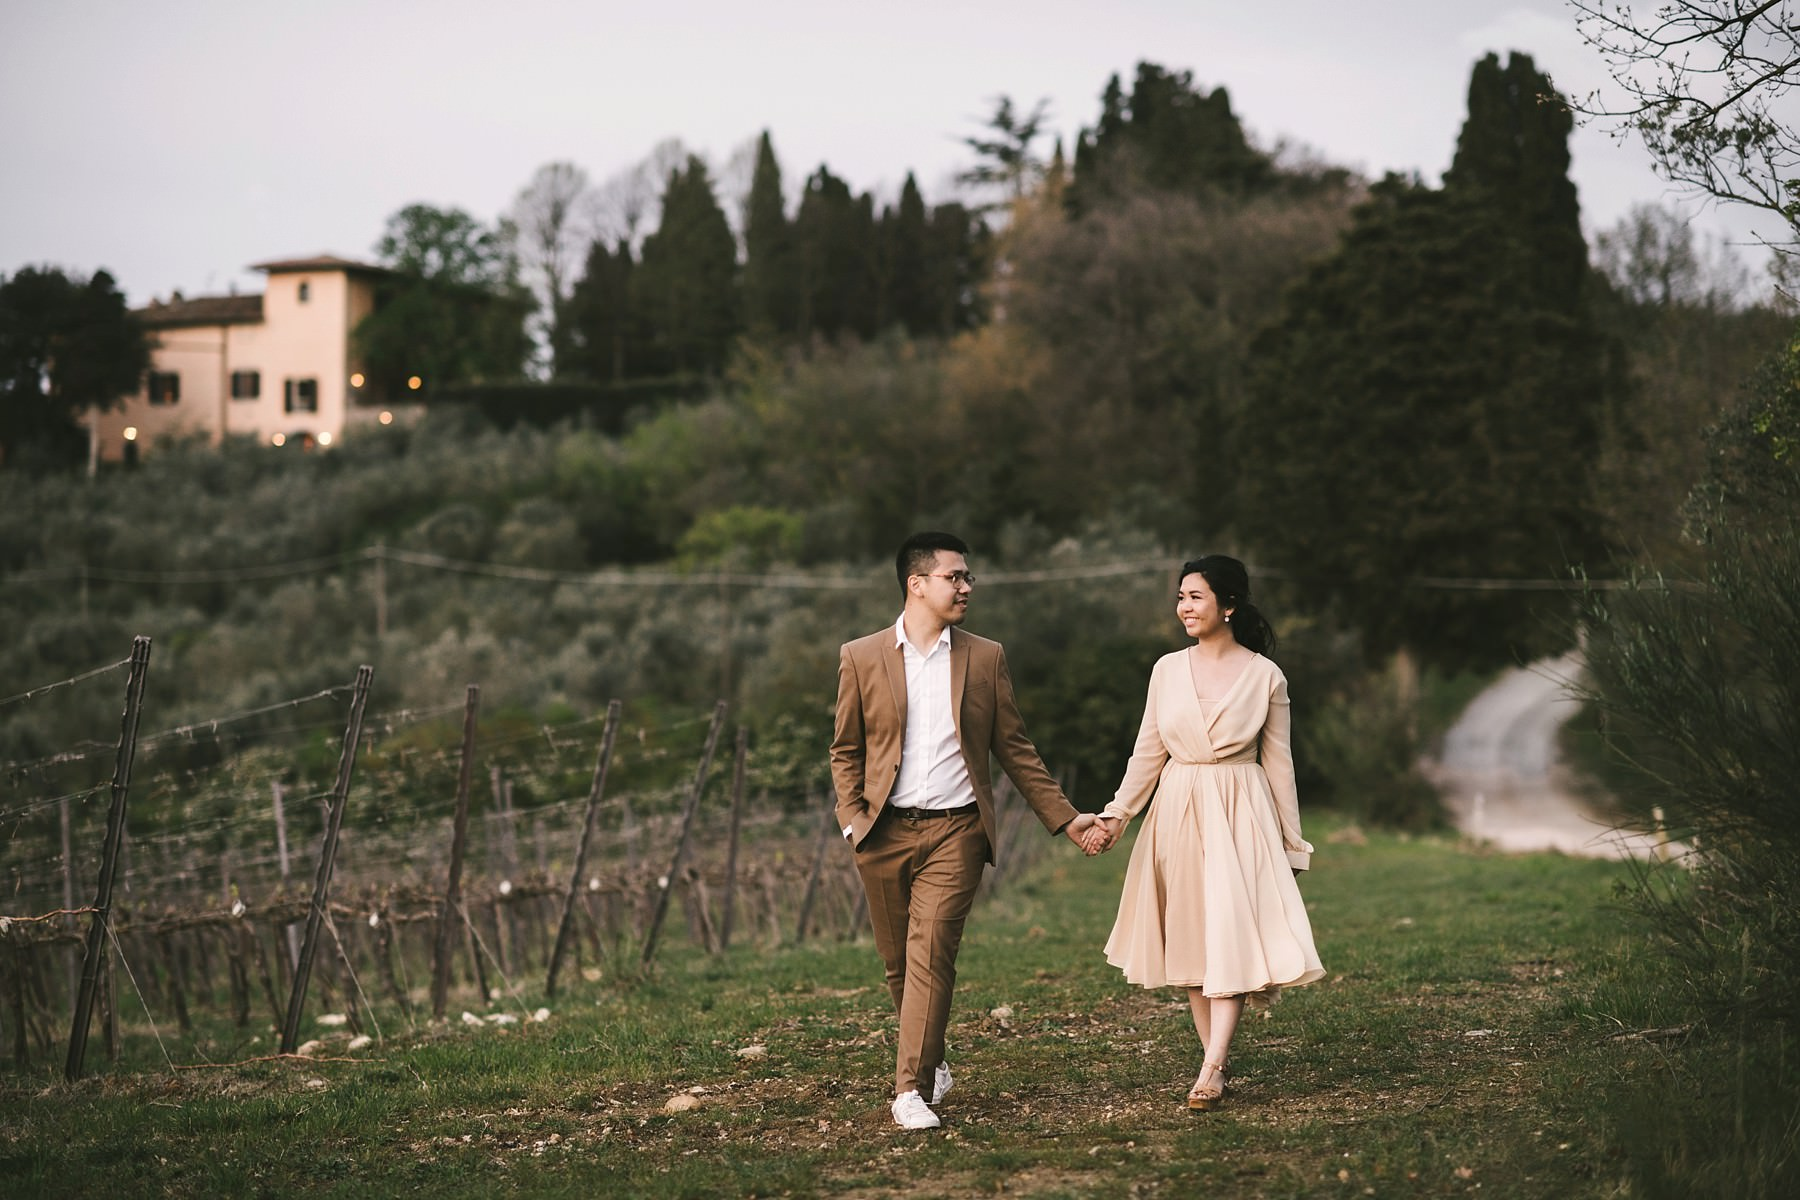 Sunset couple portrait engagement photo shoot on the green rolling hills of Chianti, Tuscany